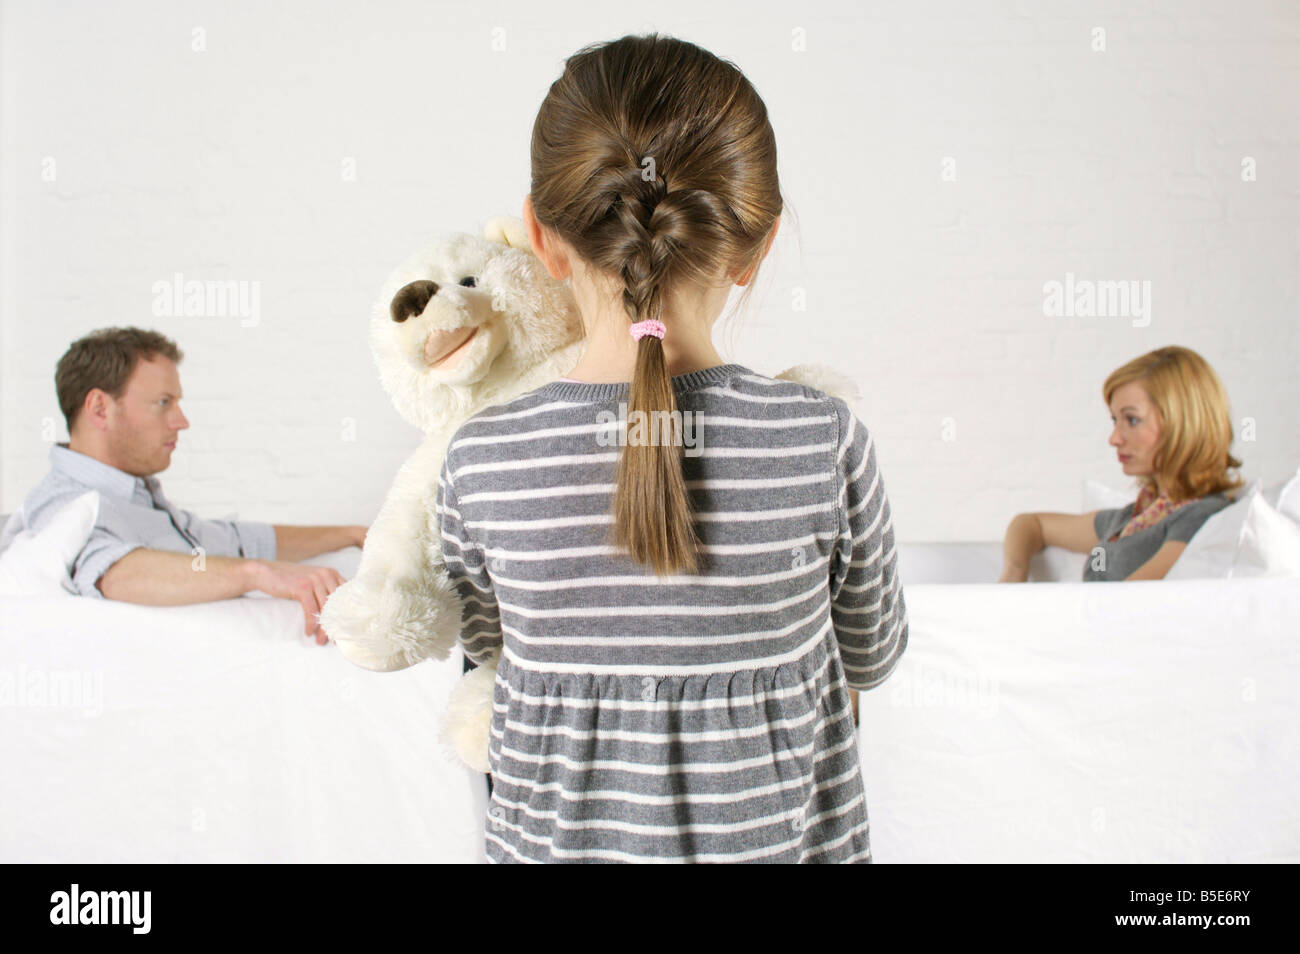 Frustrated couple sitting vis-à-vis, girl holding teddy bear standing in foreground - Stock Image